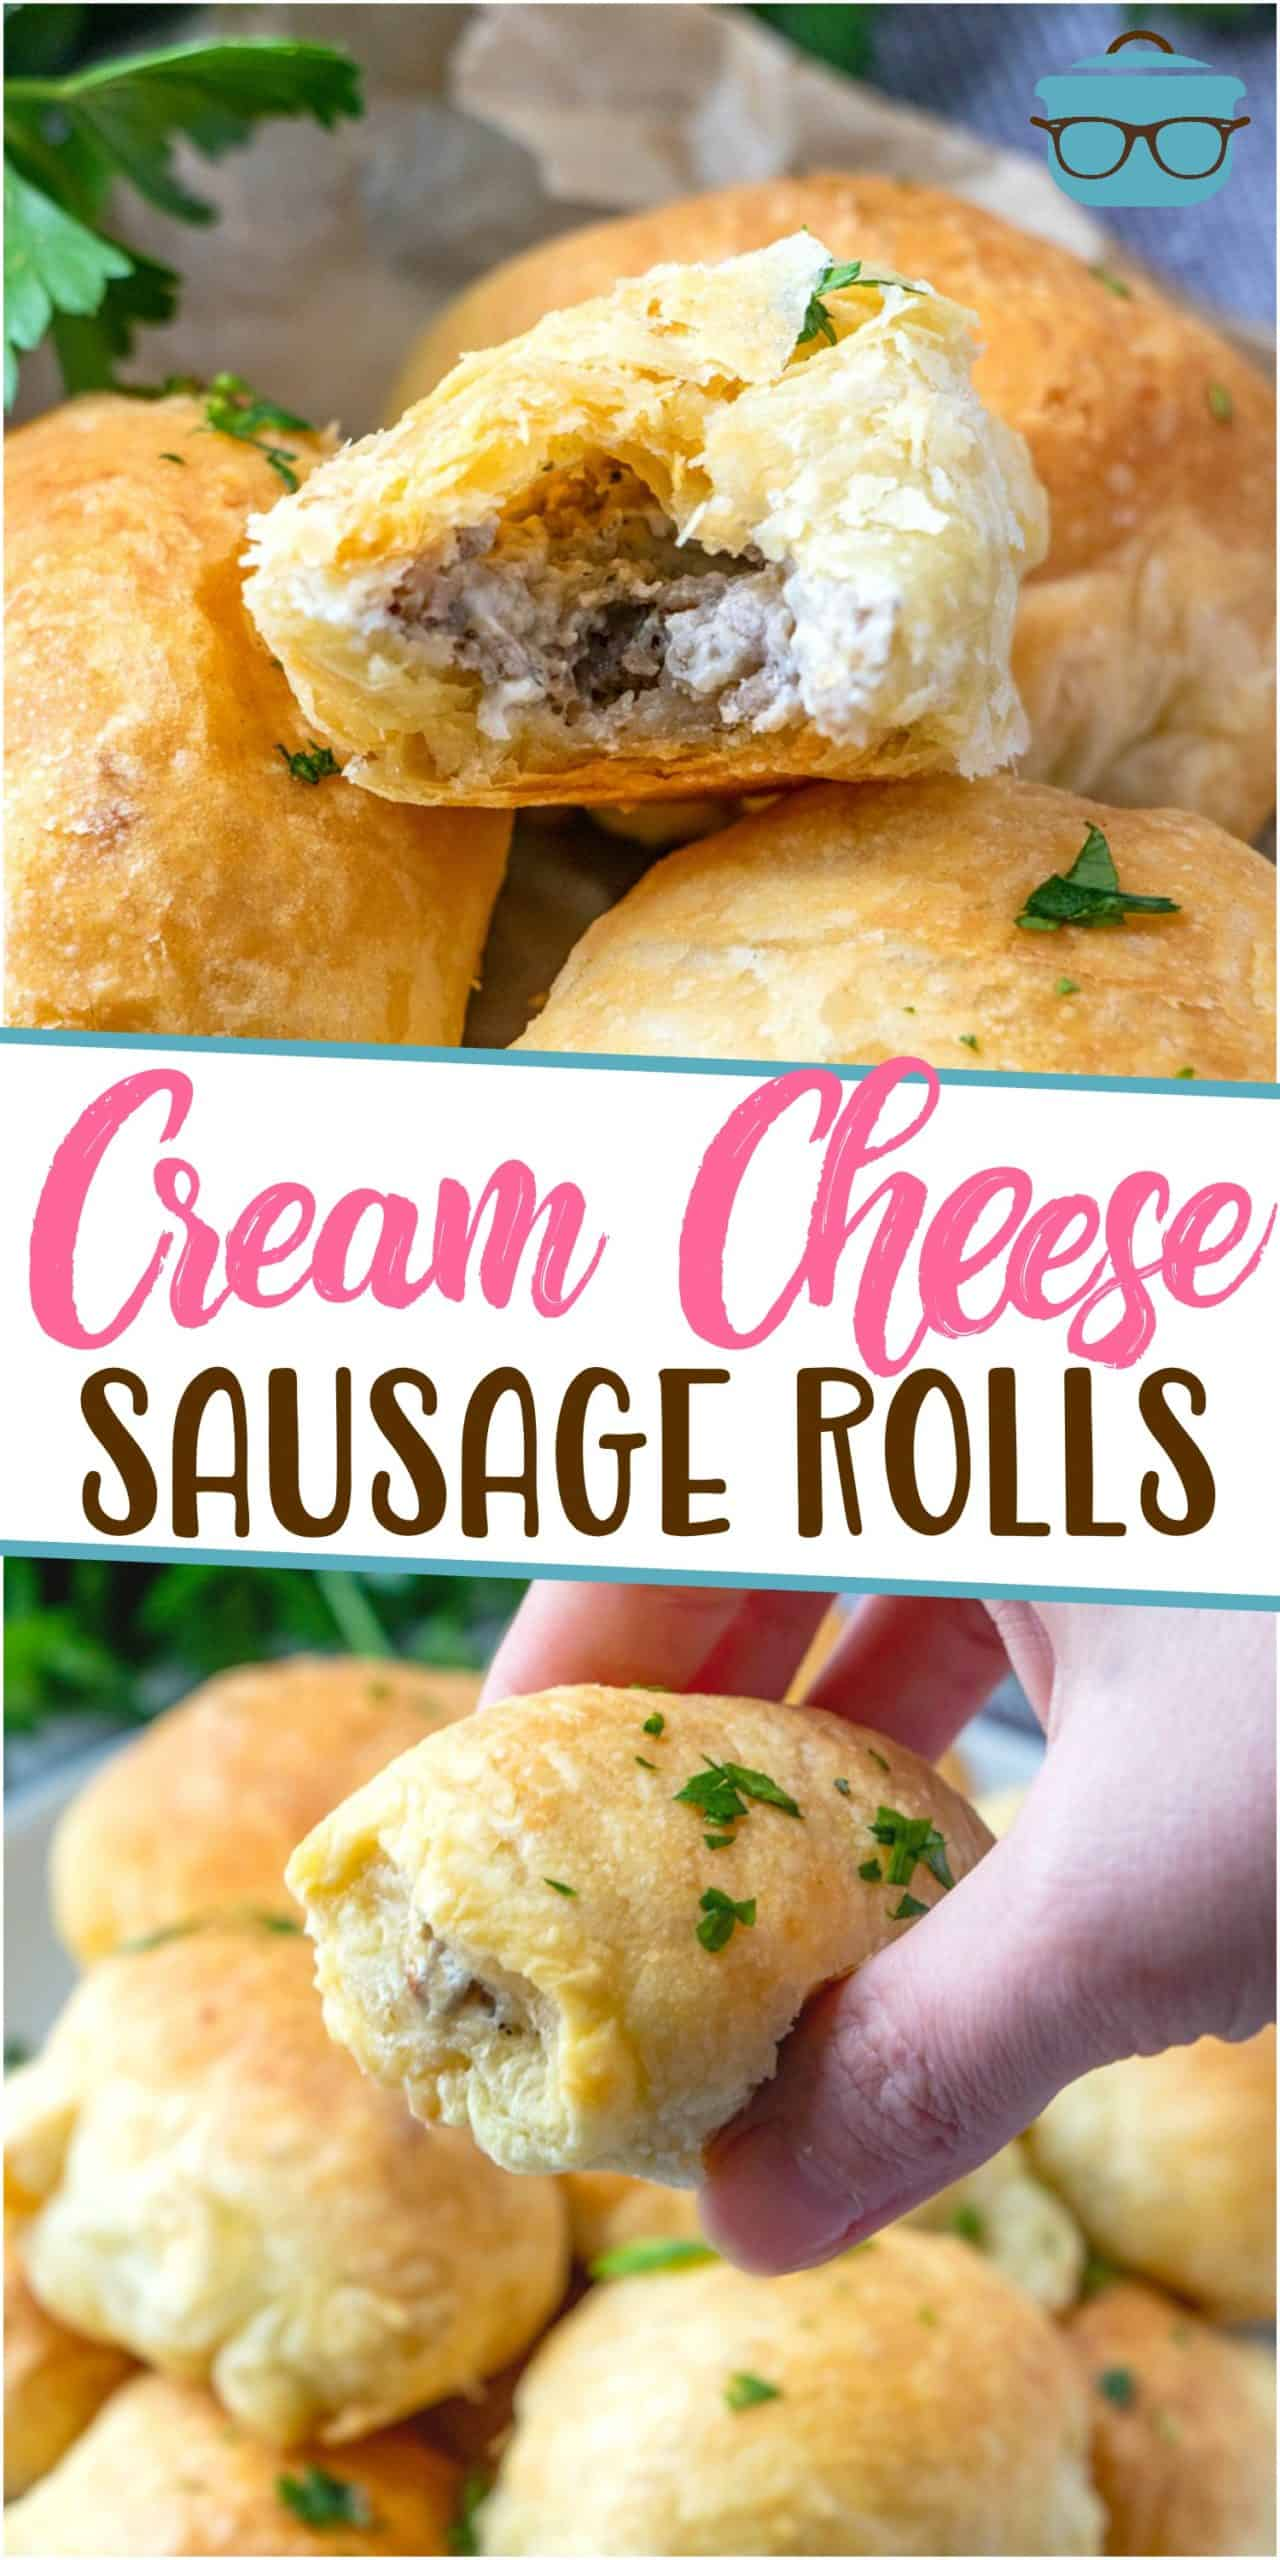 These 3-Ingredient PuffPastry Sausage Rolls are the perfect little appetizer. Puff pastry, pork sausage and cream cheese are all that's needed!